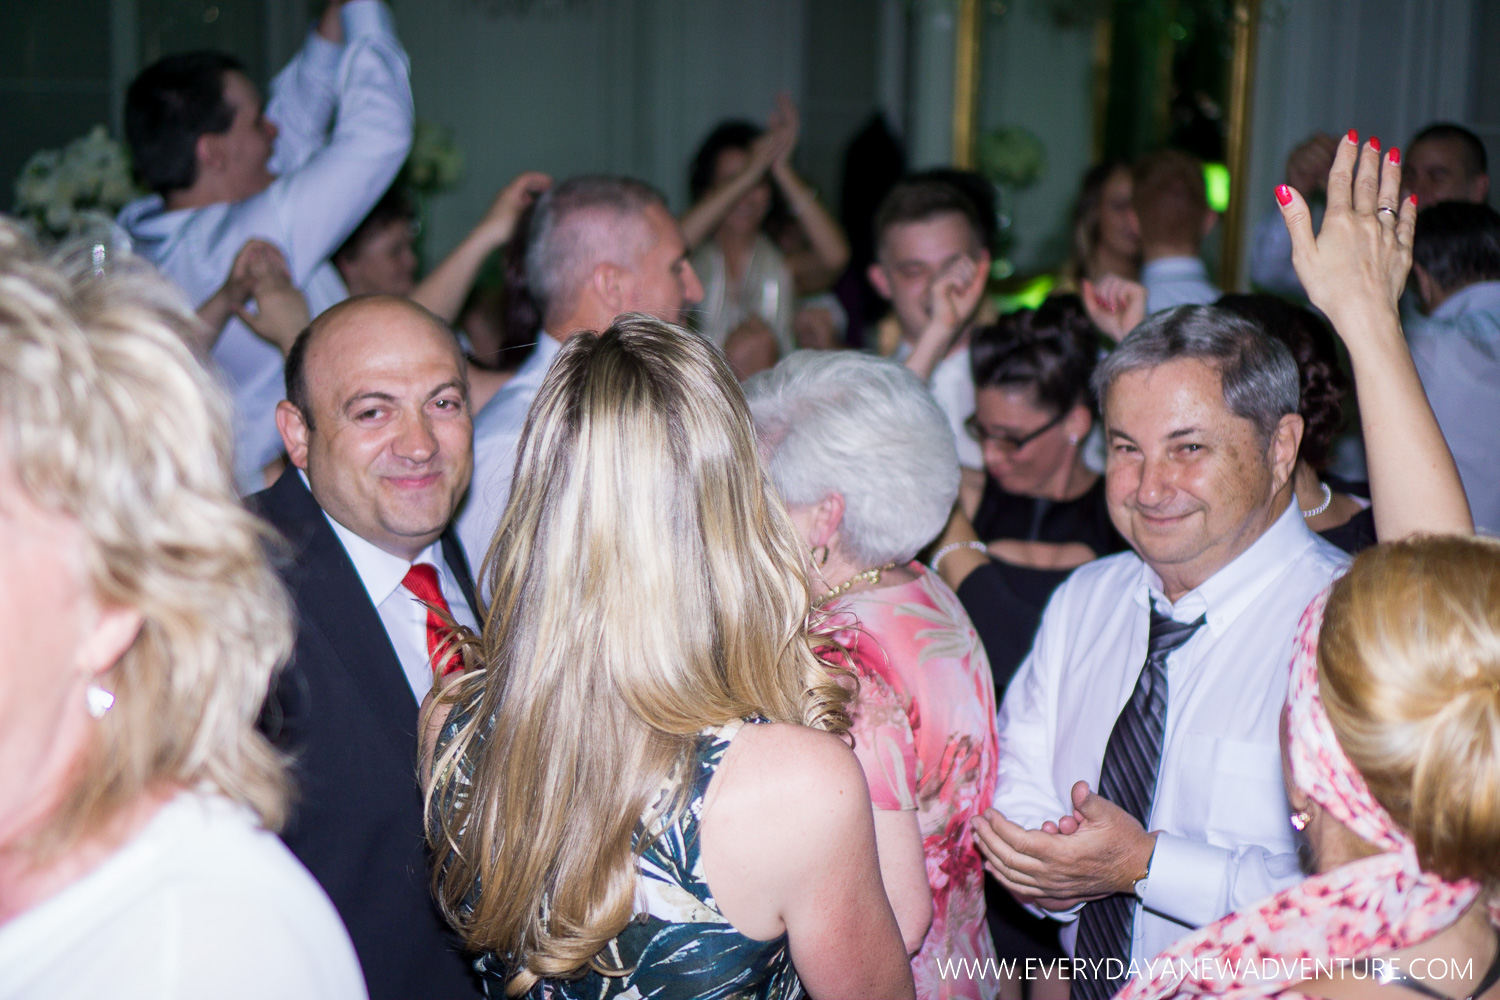 [SqSp1500-062] Budapest - Inez and Arni's Wedding!-508.jpg